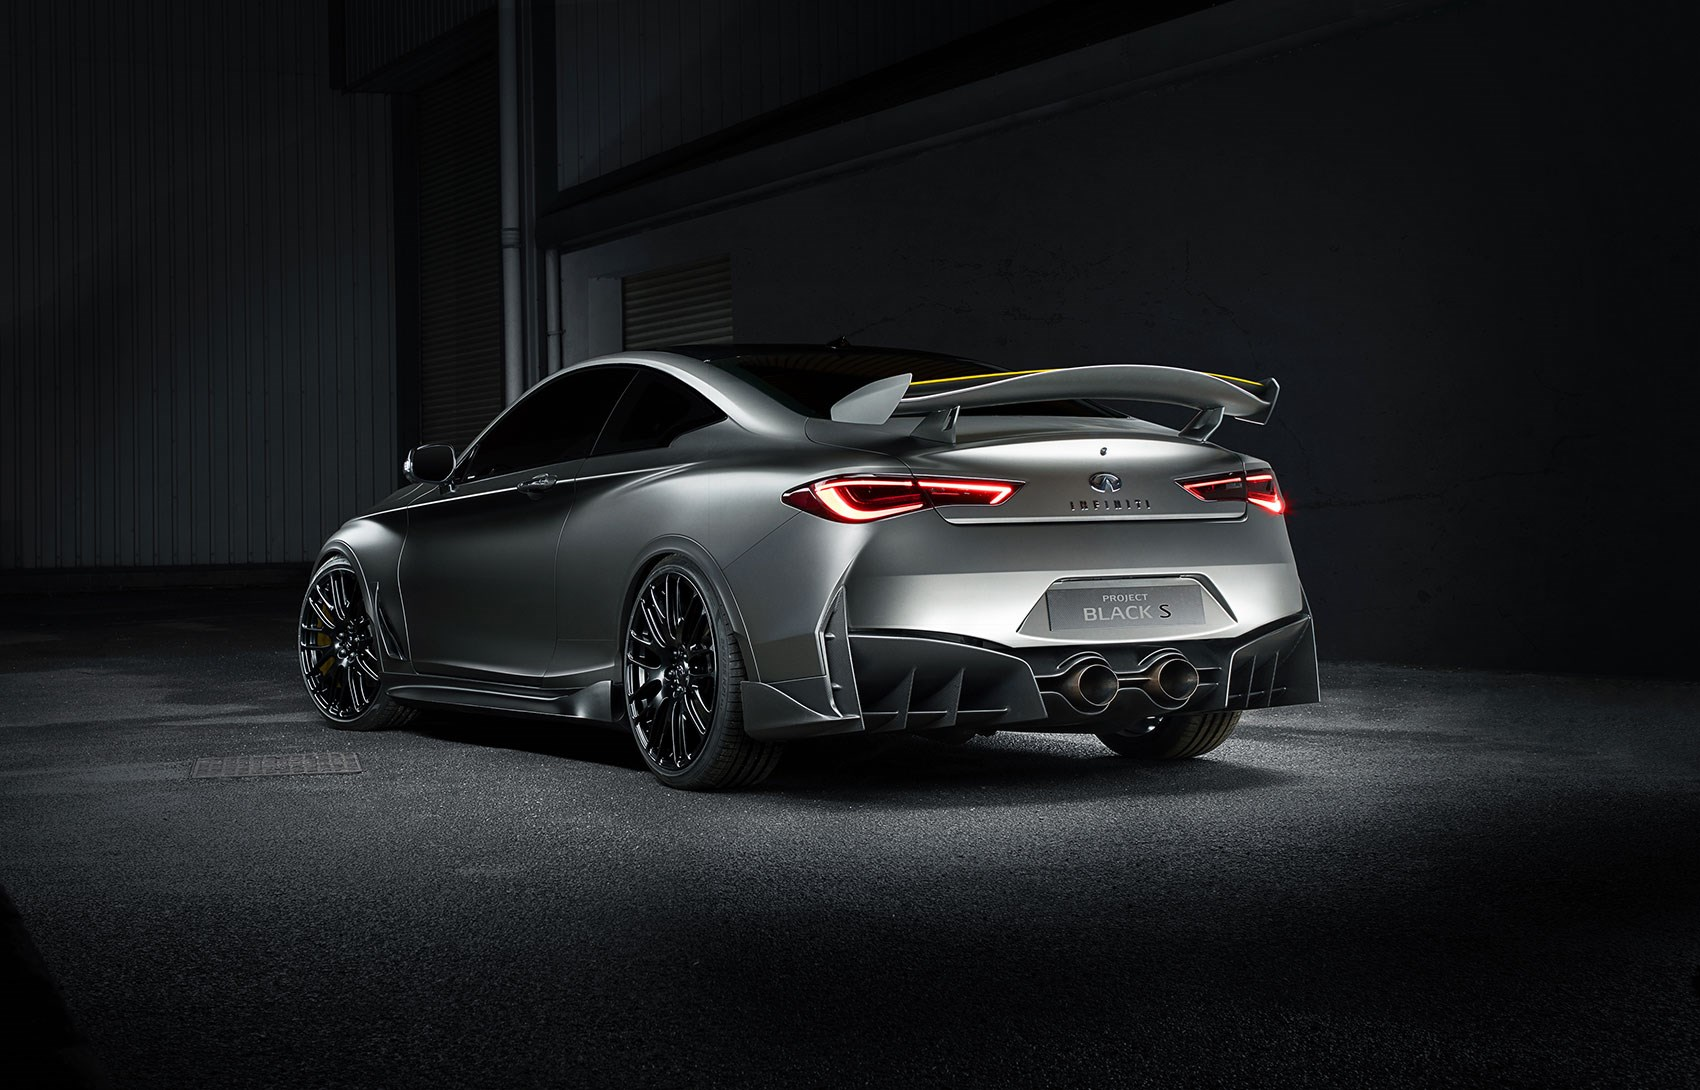 Infiniti hints at 'Black S' performance brand with wild Q60 concept